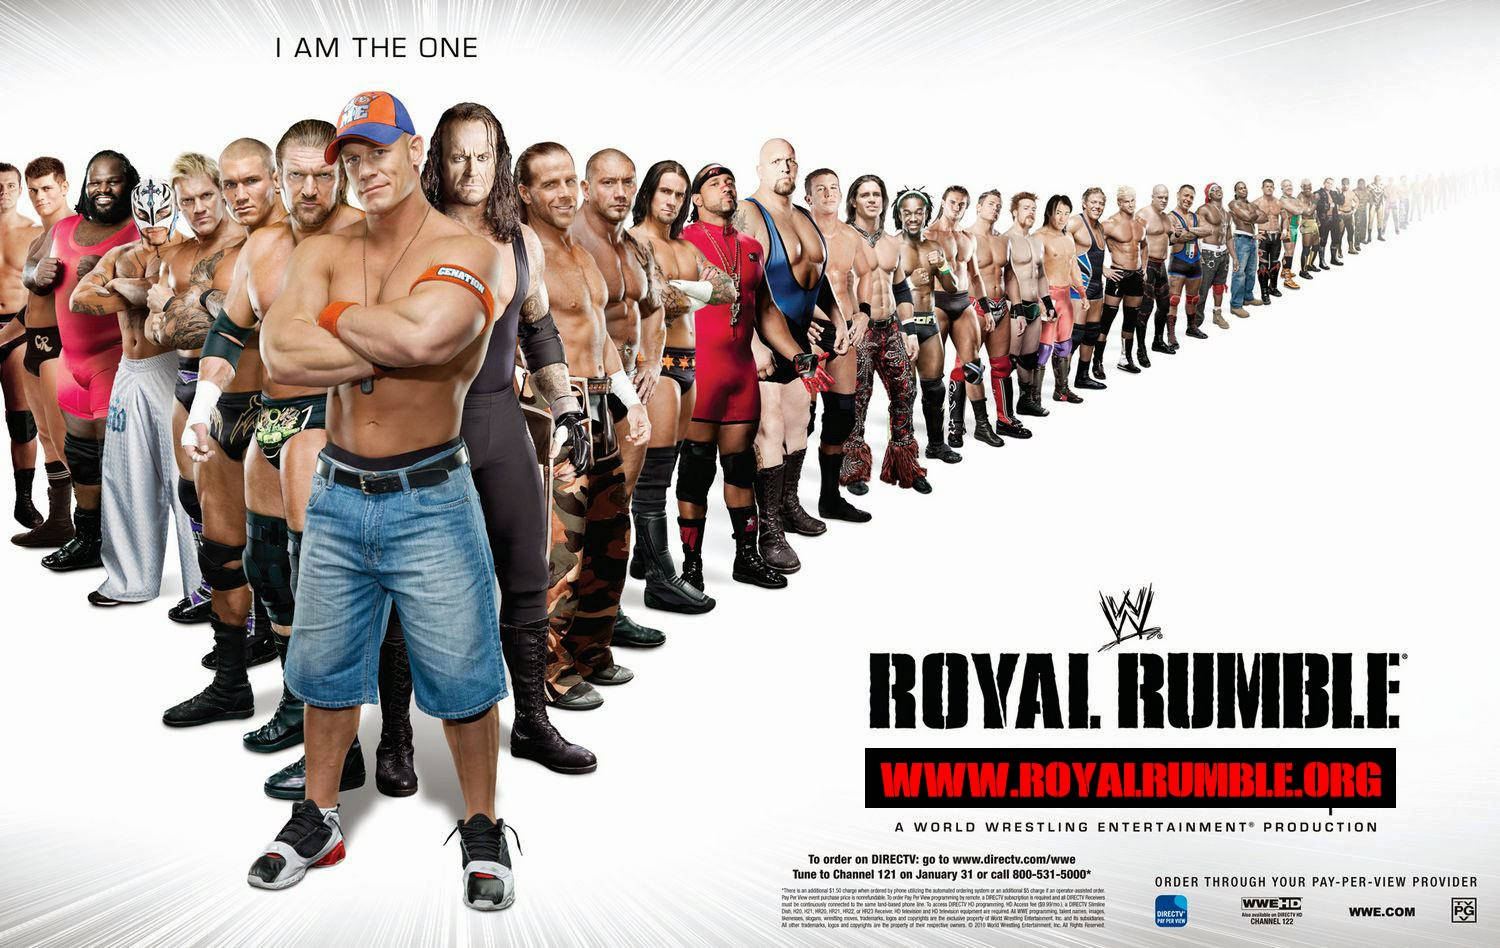 WWE Royal Rumble Wallpapers 2016 Royal Rumble 2016 Blog 1500x948